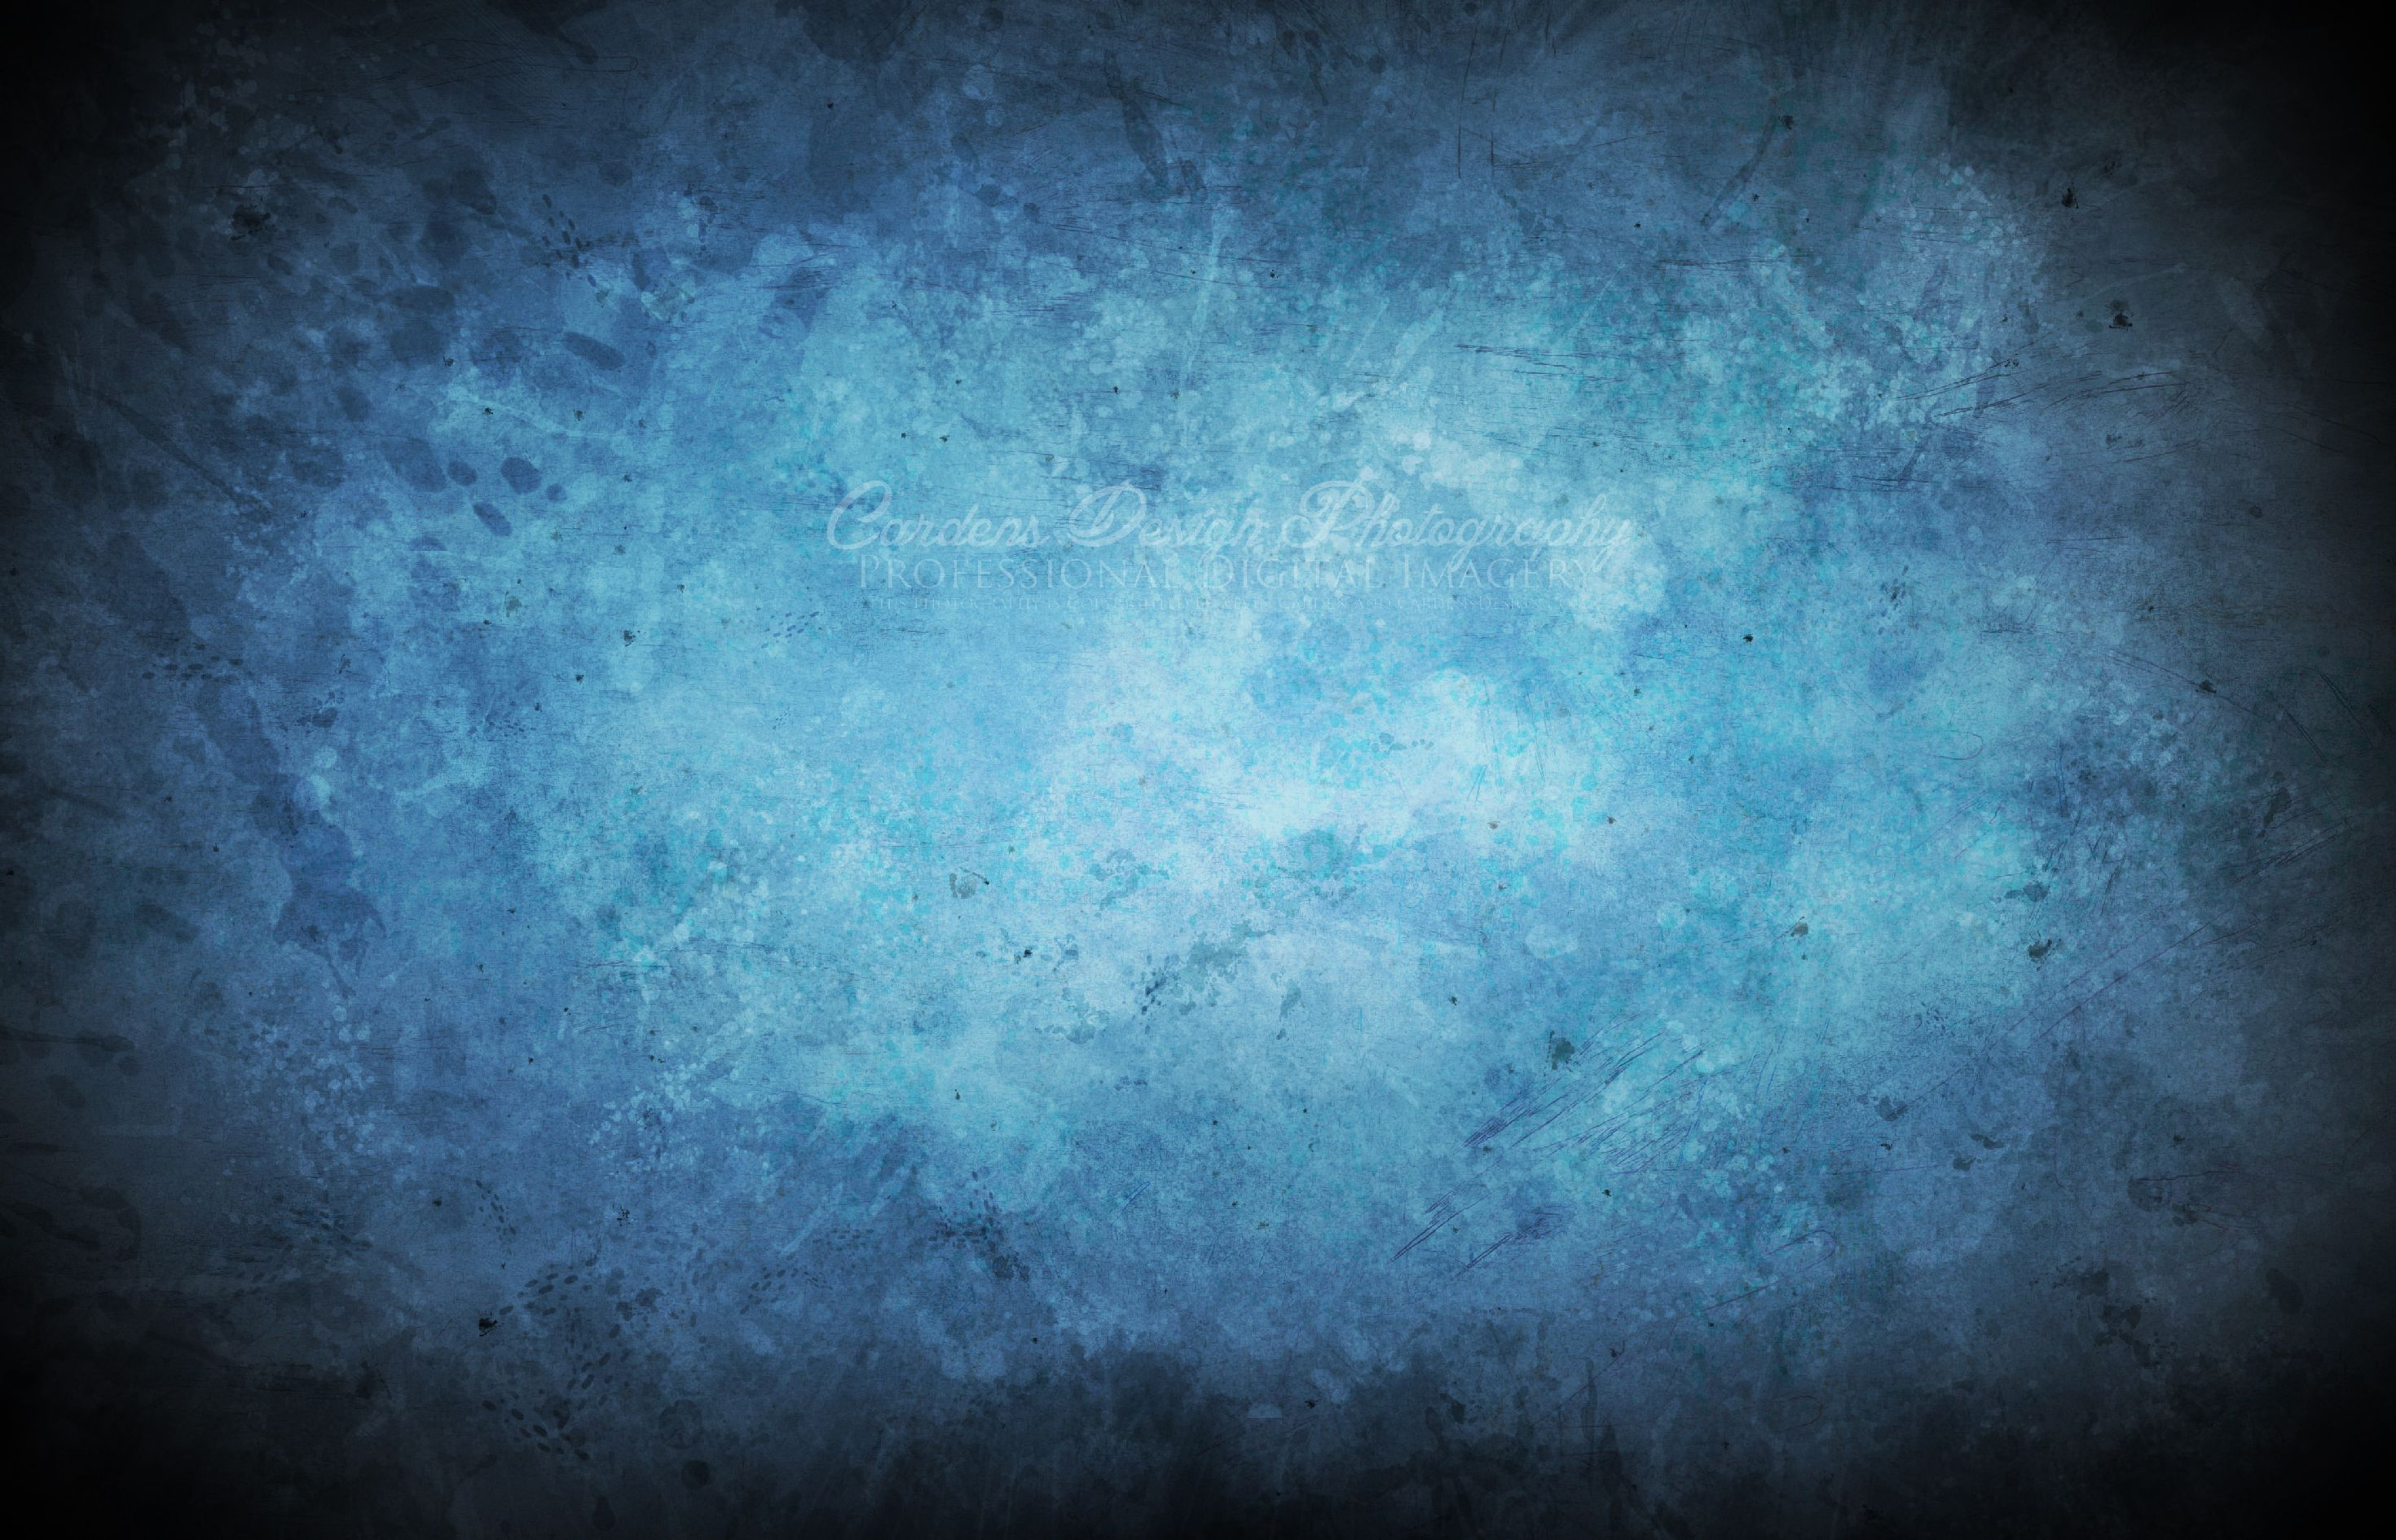 20 Blue Grunge Background Photoshop PSD Images - Blue ...